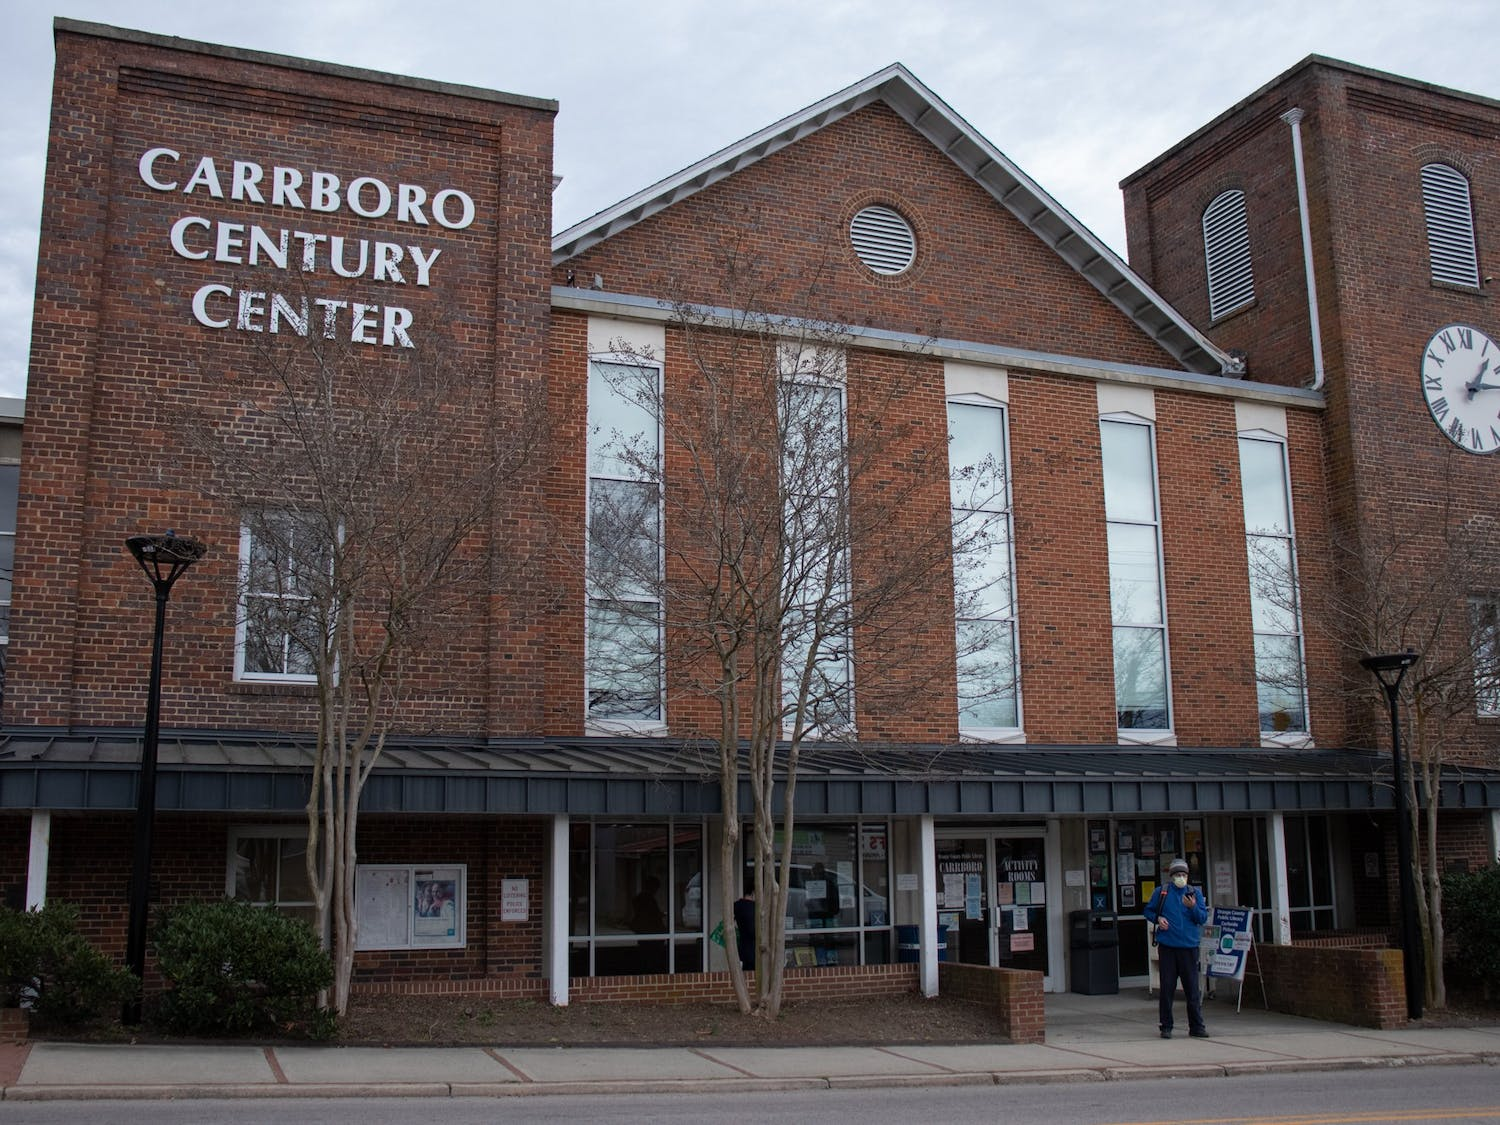 Carrboro Century Center as photographed on March 15, 2021, is located on N Greensboro St. in Carrboro and houses The Cybrary, a technology-based library service.